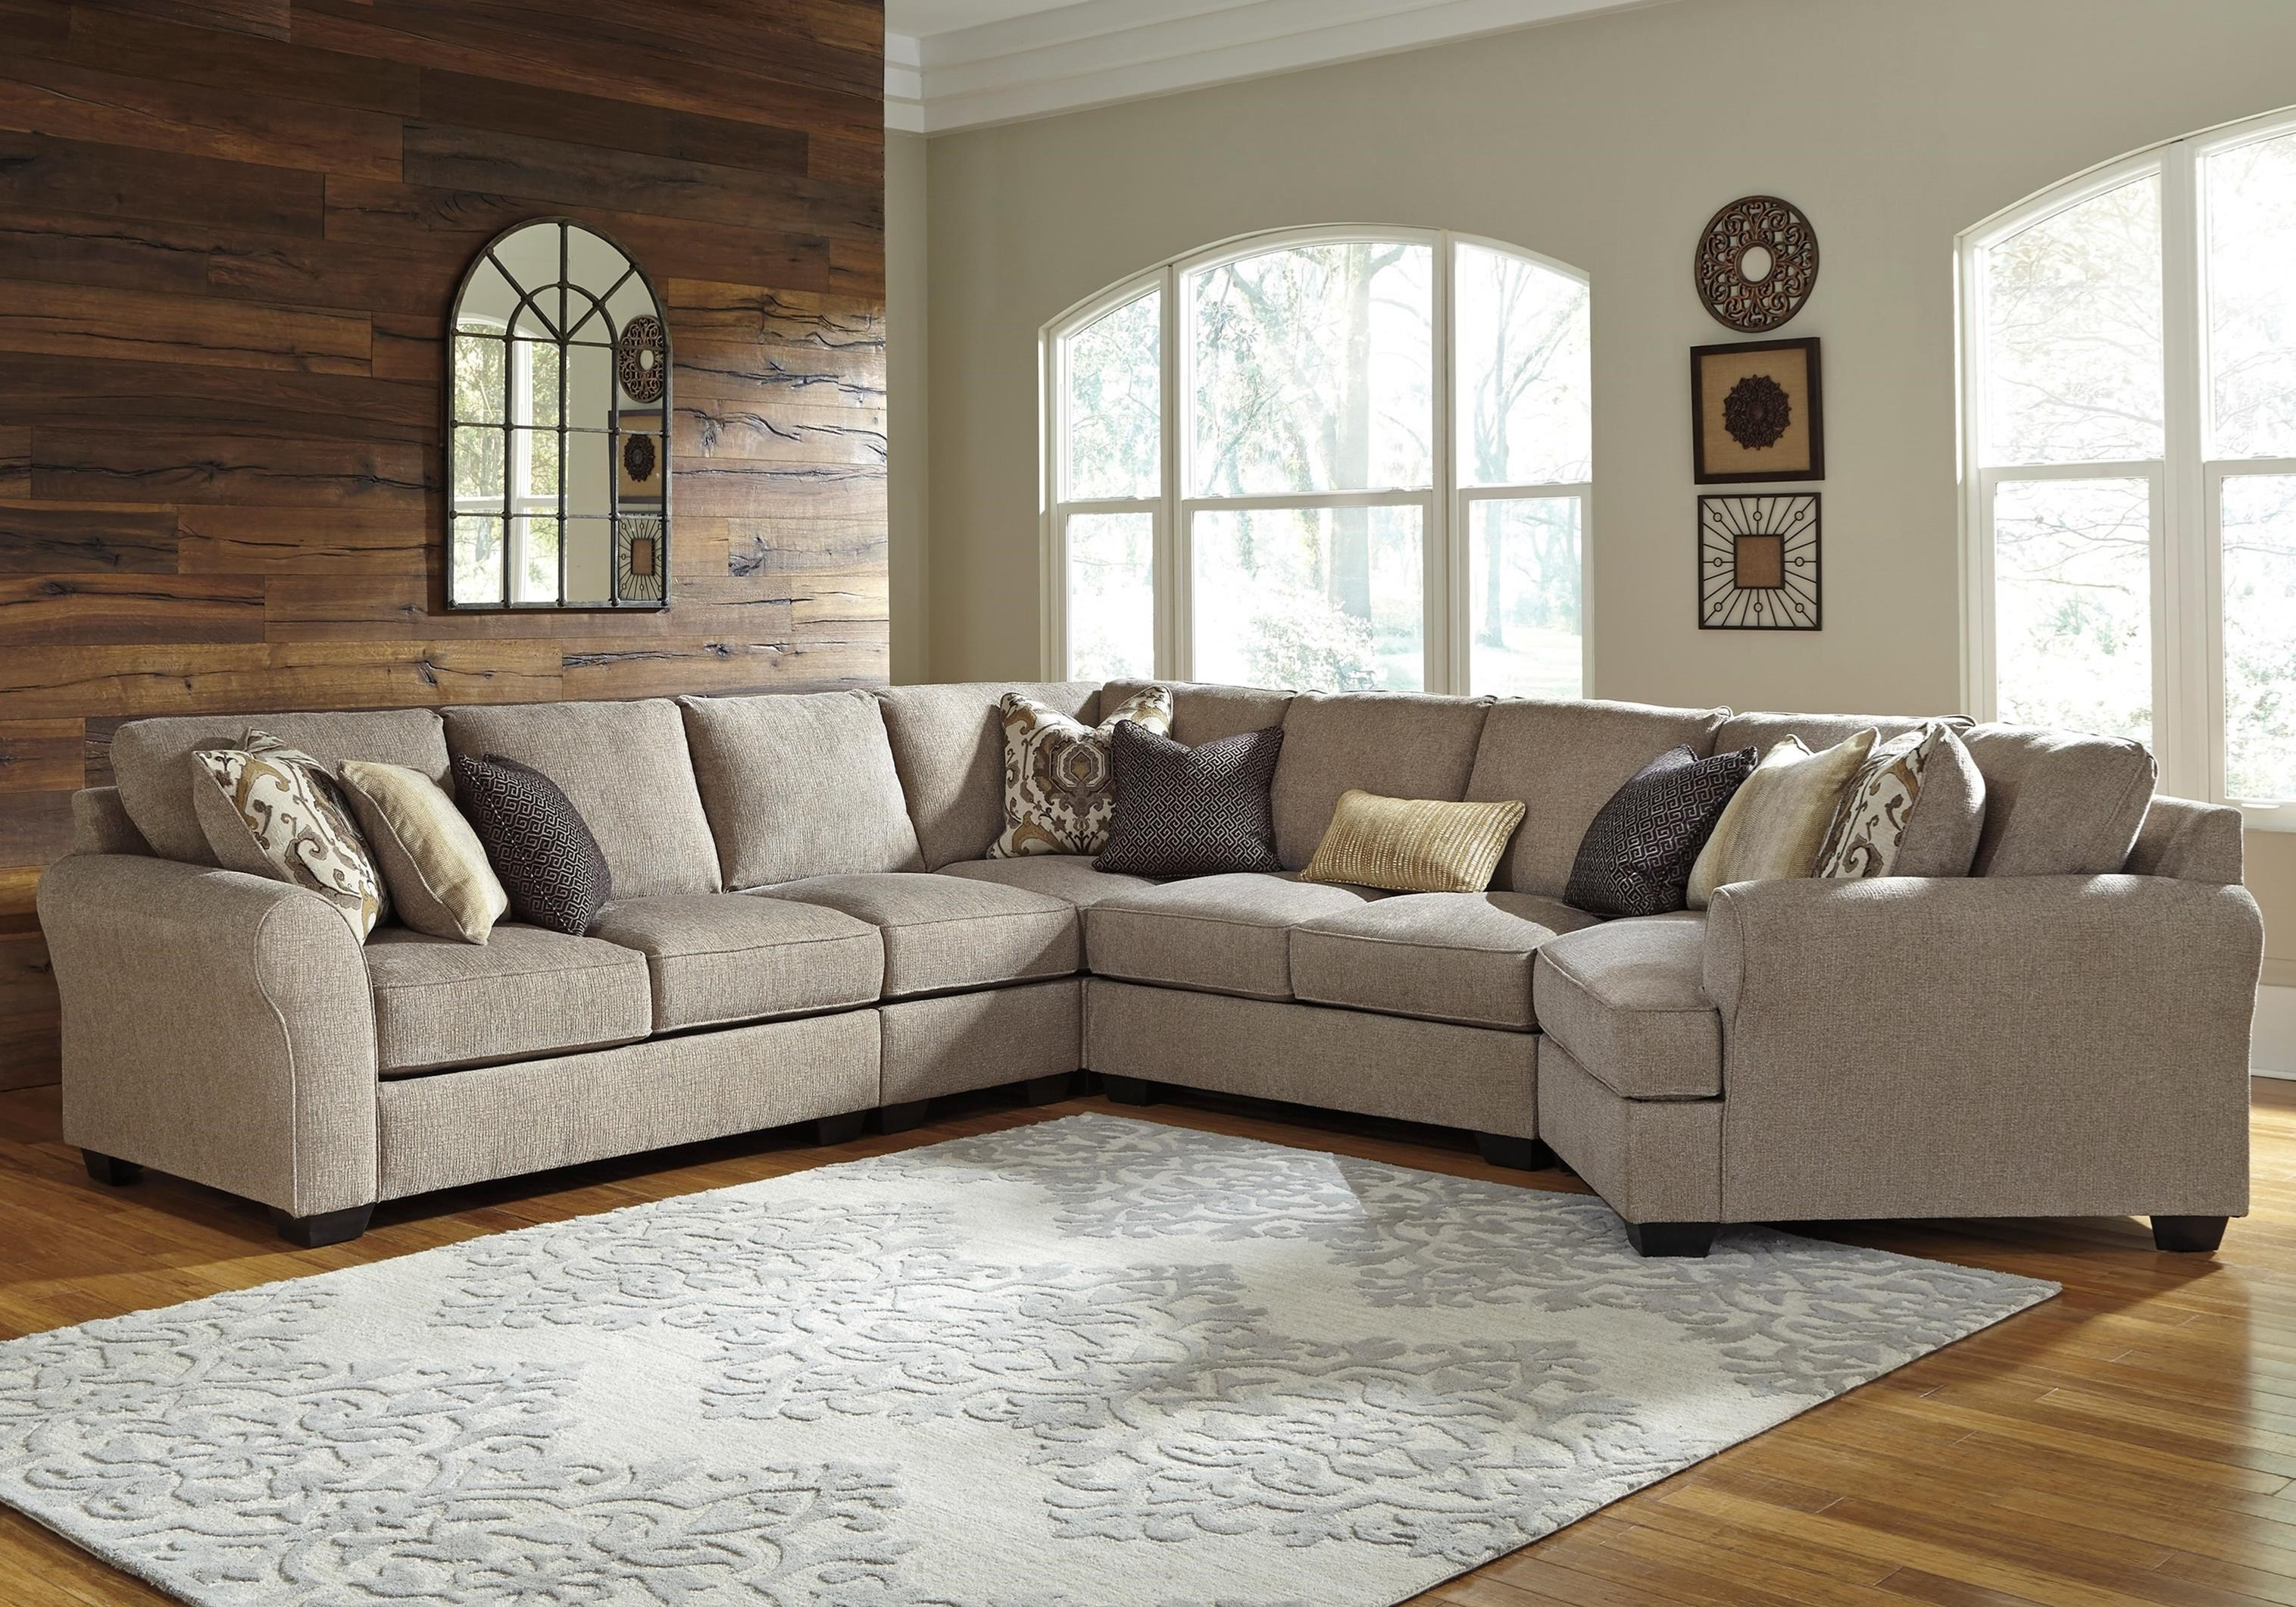 Pantomine 5-Piece Sectional with Cuddler by Benchcraft at Value City Furniture